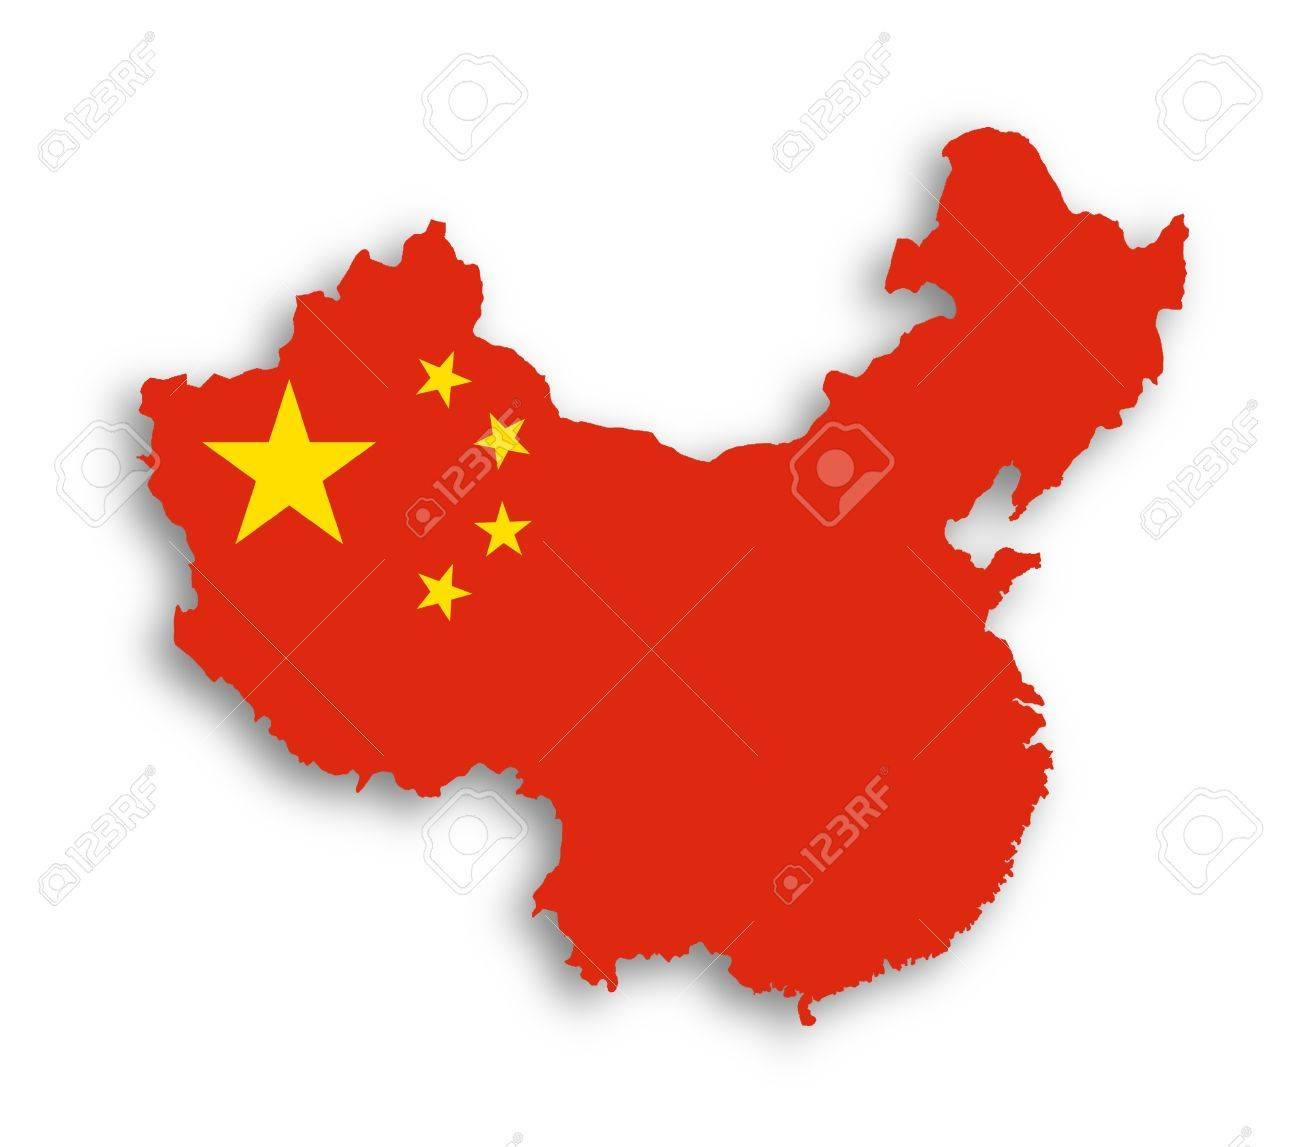 Outline map of China covered in Chinese flag